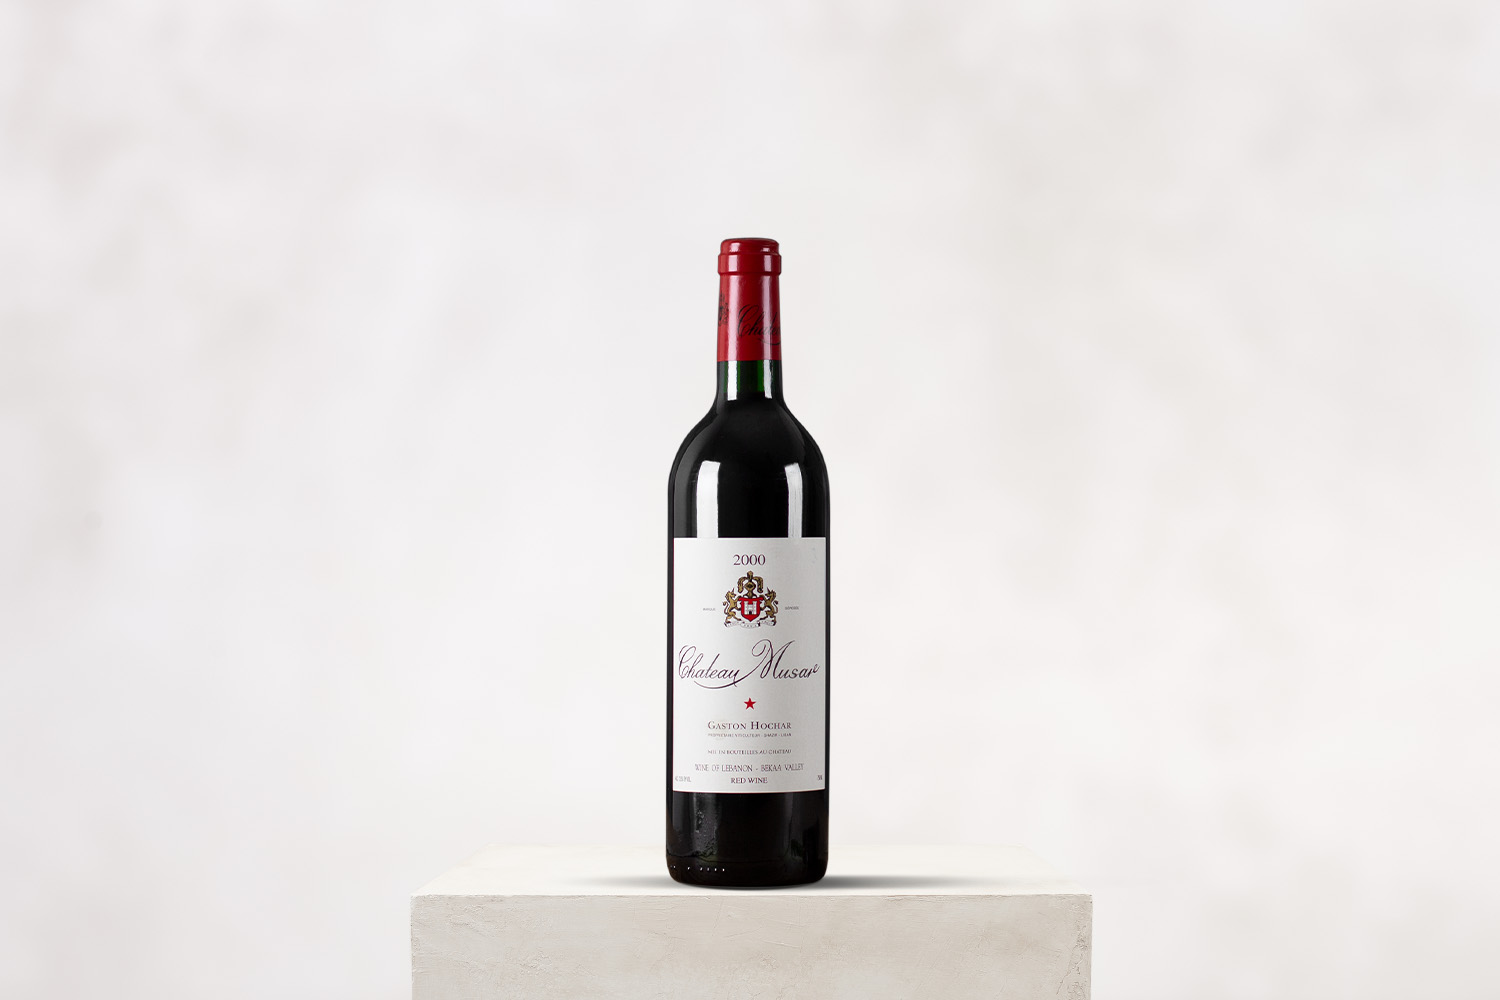 Château Musar, Grand Vin Bekaa Valley, Lebanon 2000 - SommSelect